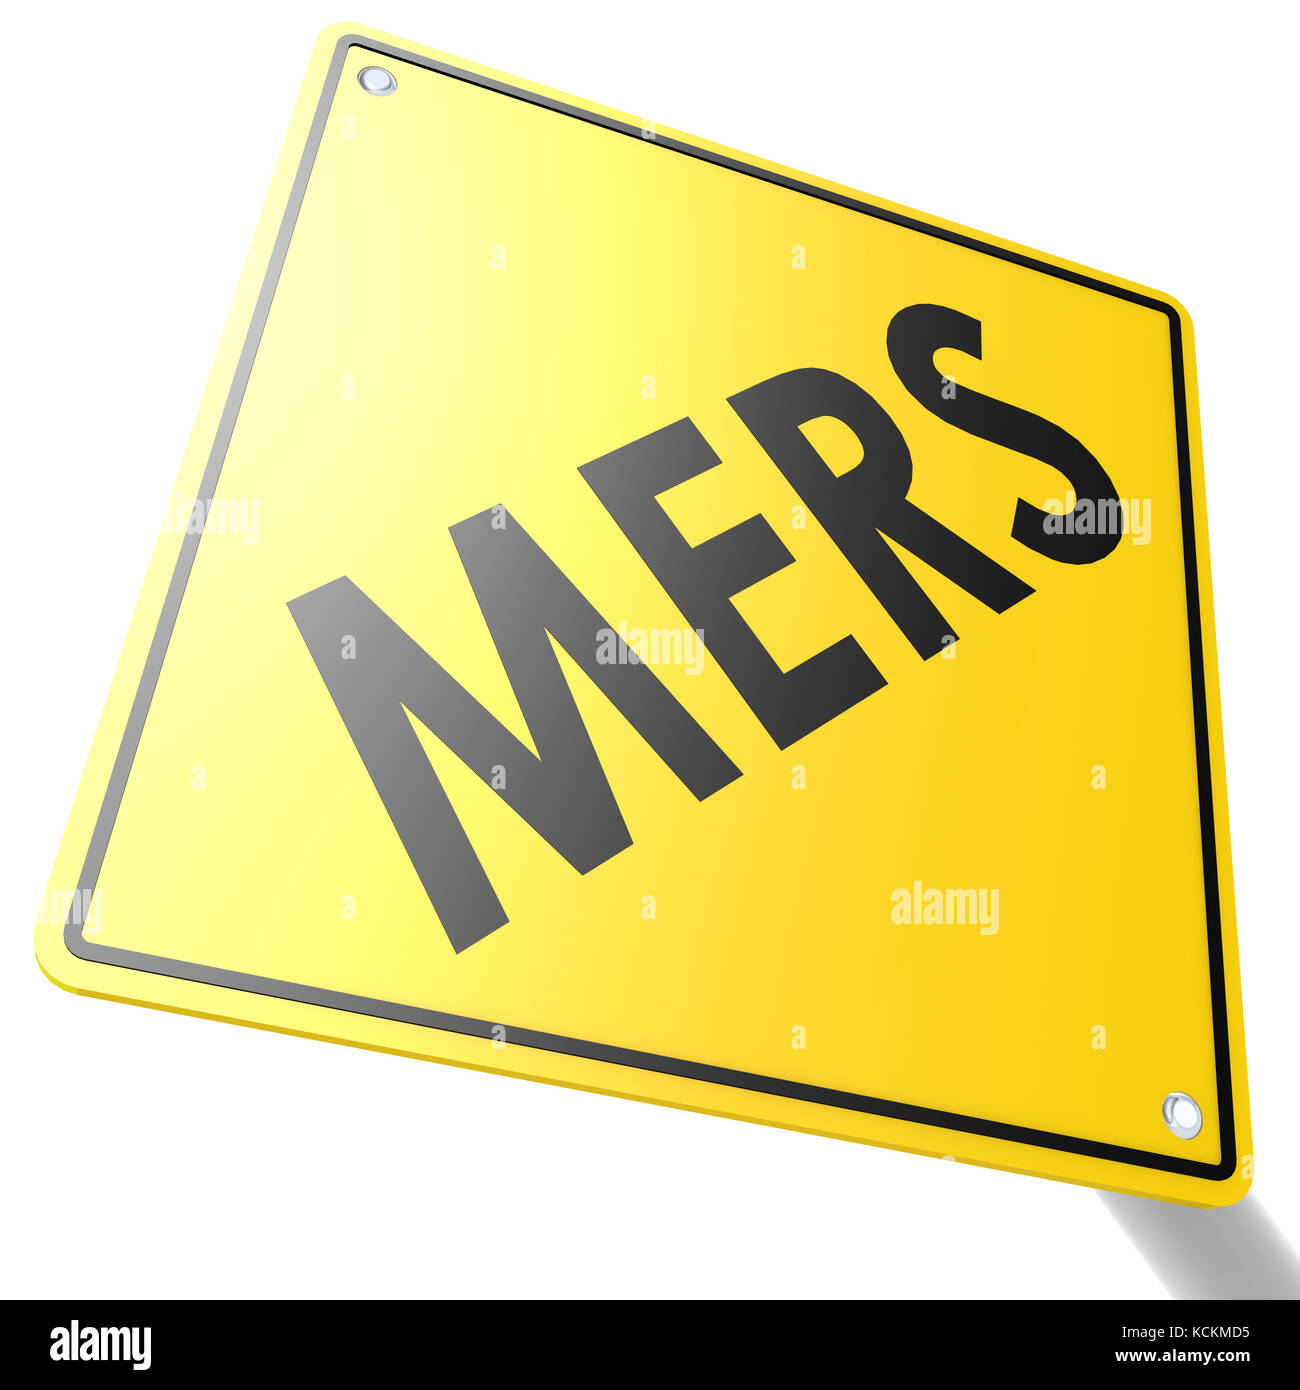 MERS road sign image with hi-res rendered artwork that could be used for any graphic design. - Stock Image